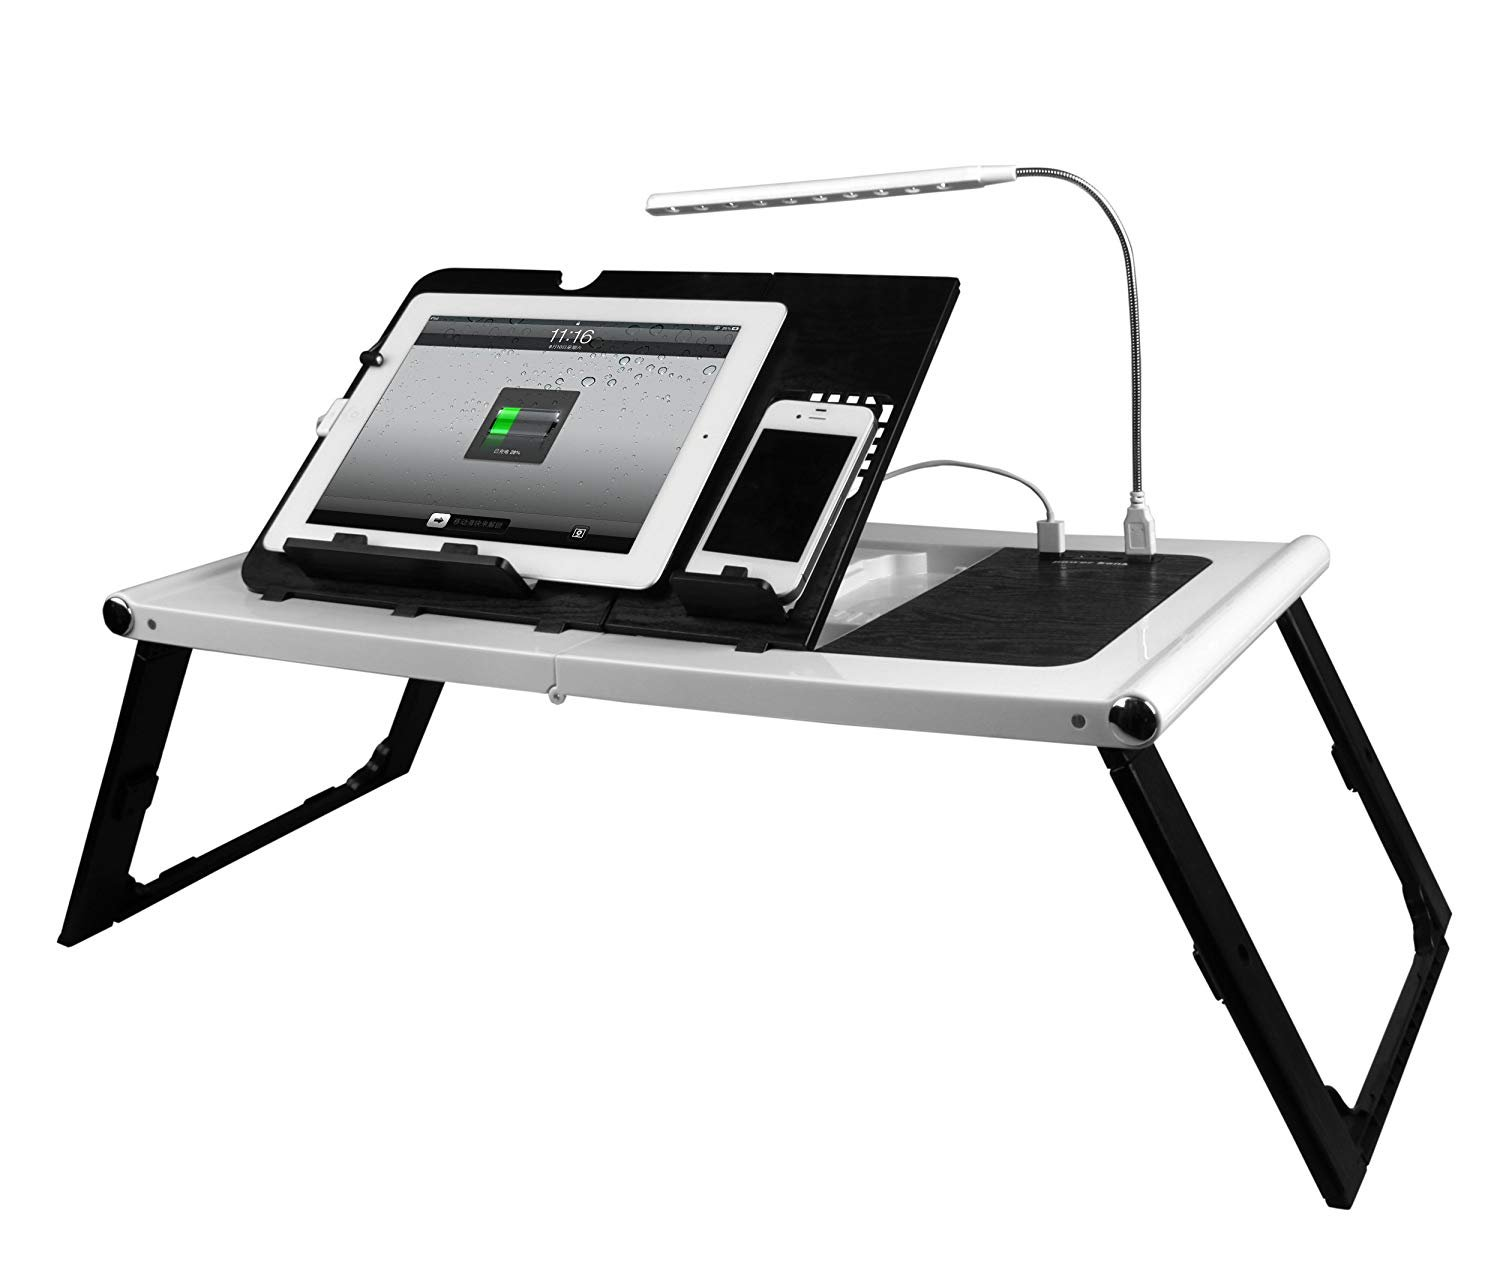 Smart Charging Table Portable Adjustable Bed Tray Table - Lap Desk - Stand - Desk for Laptops, MacBook, Notebook & Tablets with 10000mAh Power Bank (NO OUTLET NEEDED) - BONUS LED light (white)